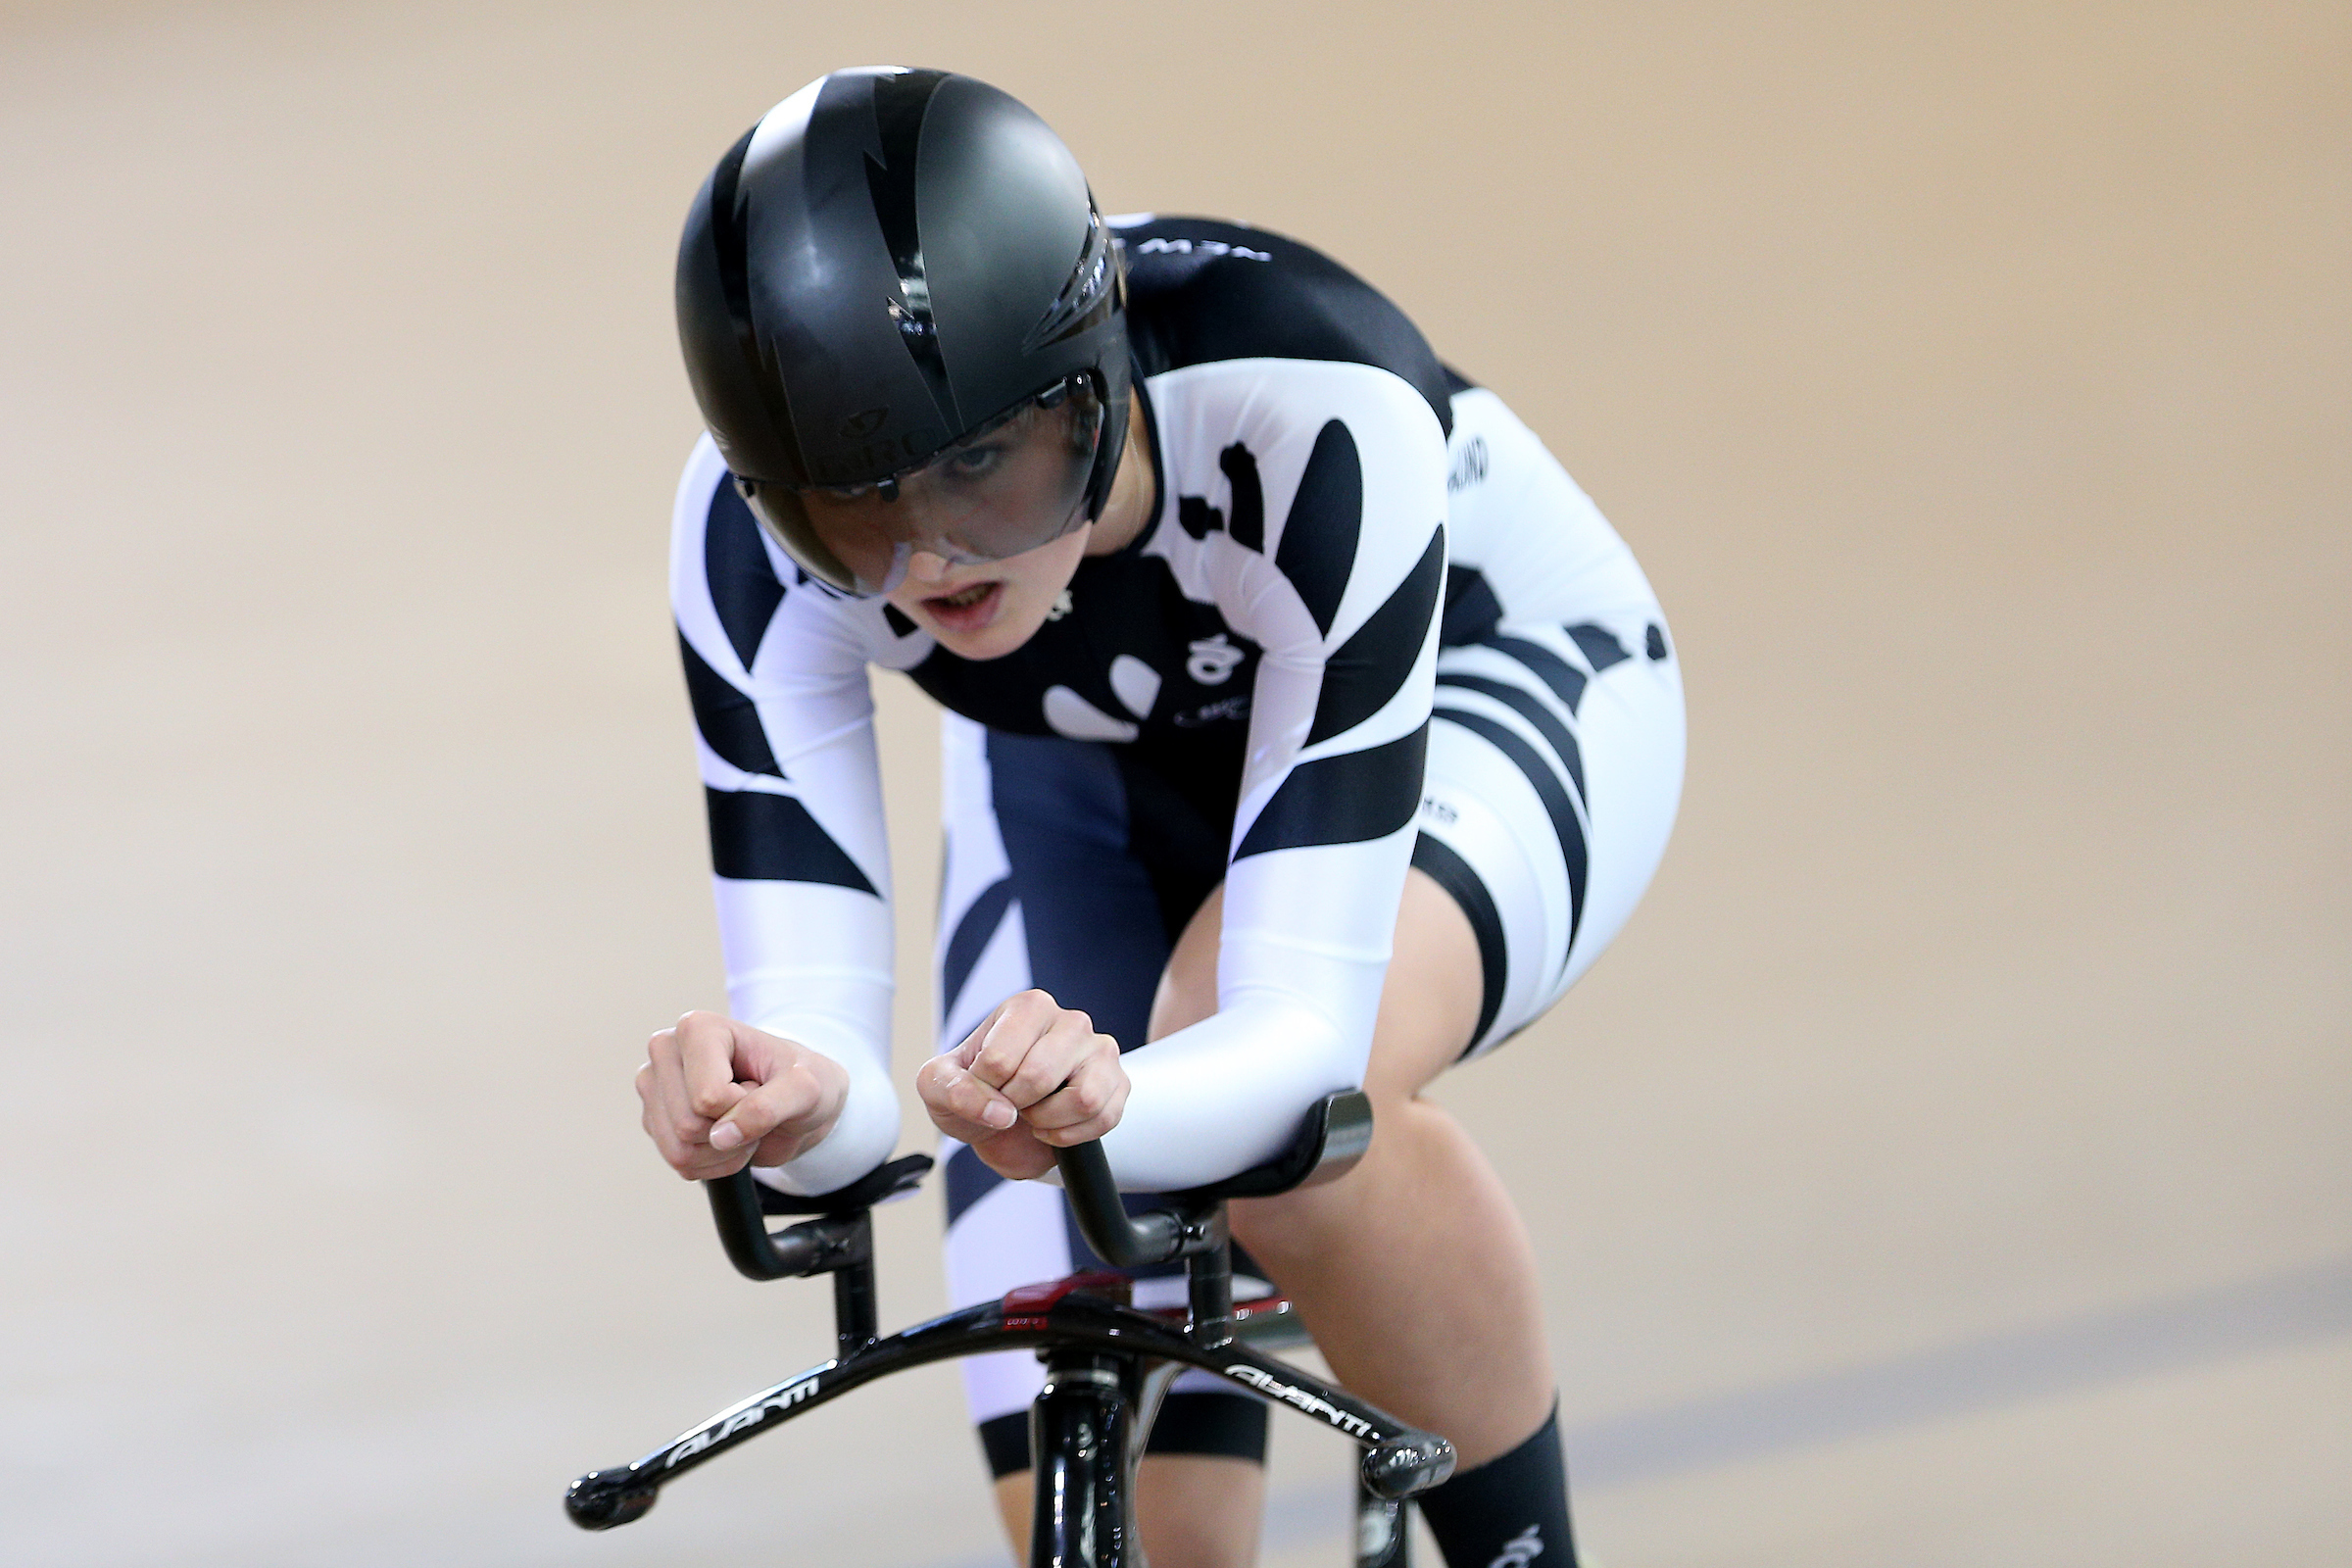 Ally Wollaston in action in the Oceania Championships at the Avantidrome, Cambridge in December 2017. Photo: Dianne Manson